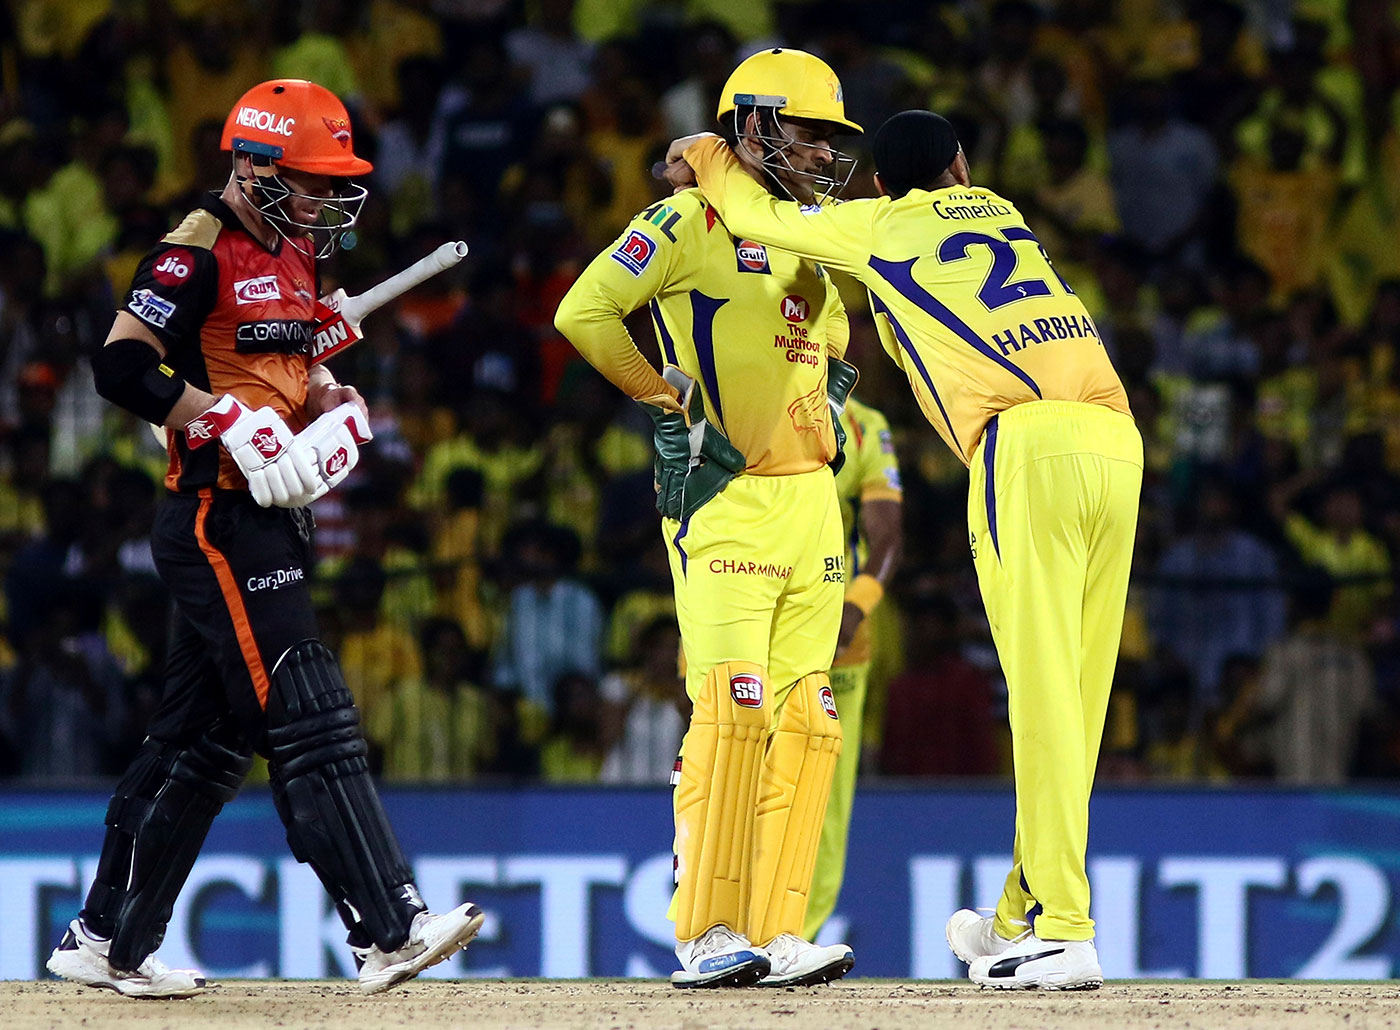 With Dhoni after dismissing David Warner in a 2019 game. Between Chris Gayle and Warner, Singh picks the latter as the more difficult batsman to bowl to in T20